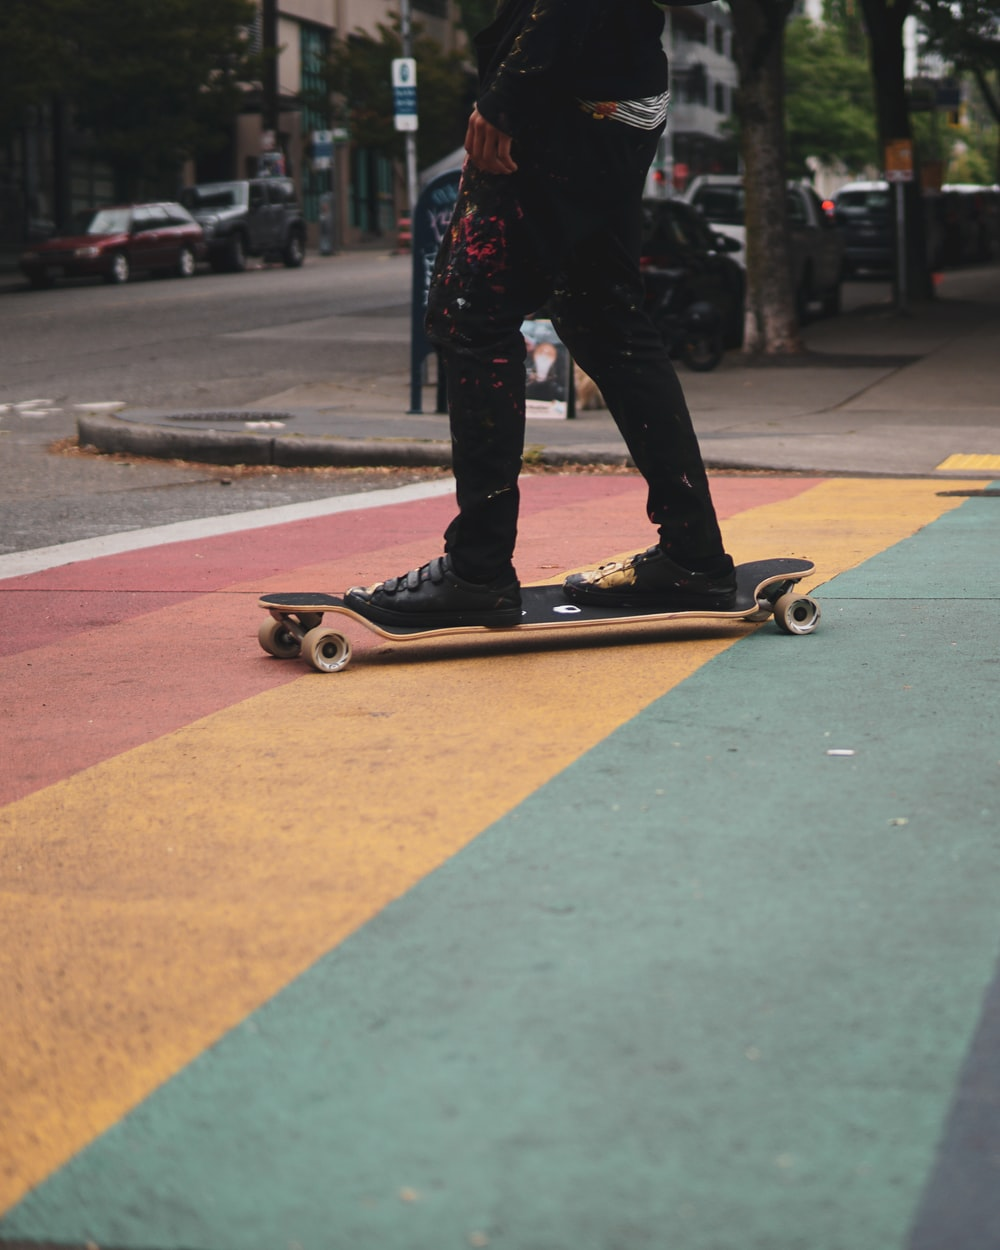 man in black pants and black shoes riding on skateboard during daytime